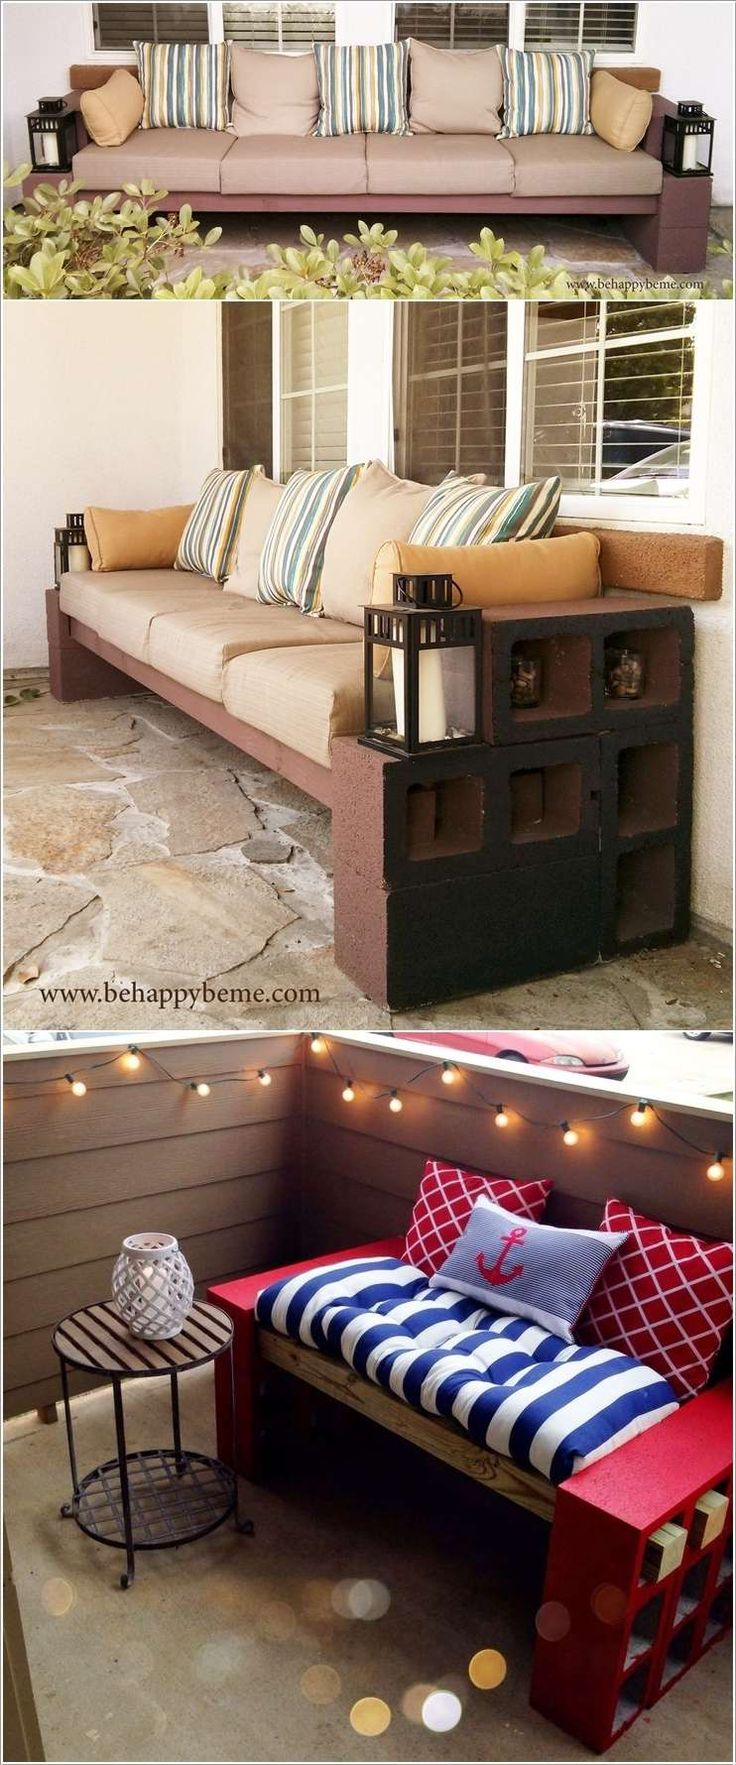 Best 25+ Concrete blocks ideas on Pinterest | Bench block, Cinder ...